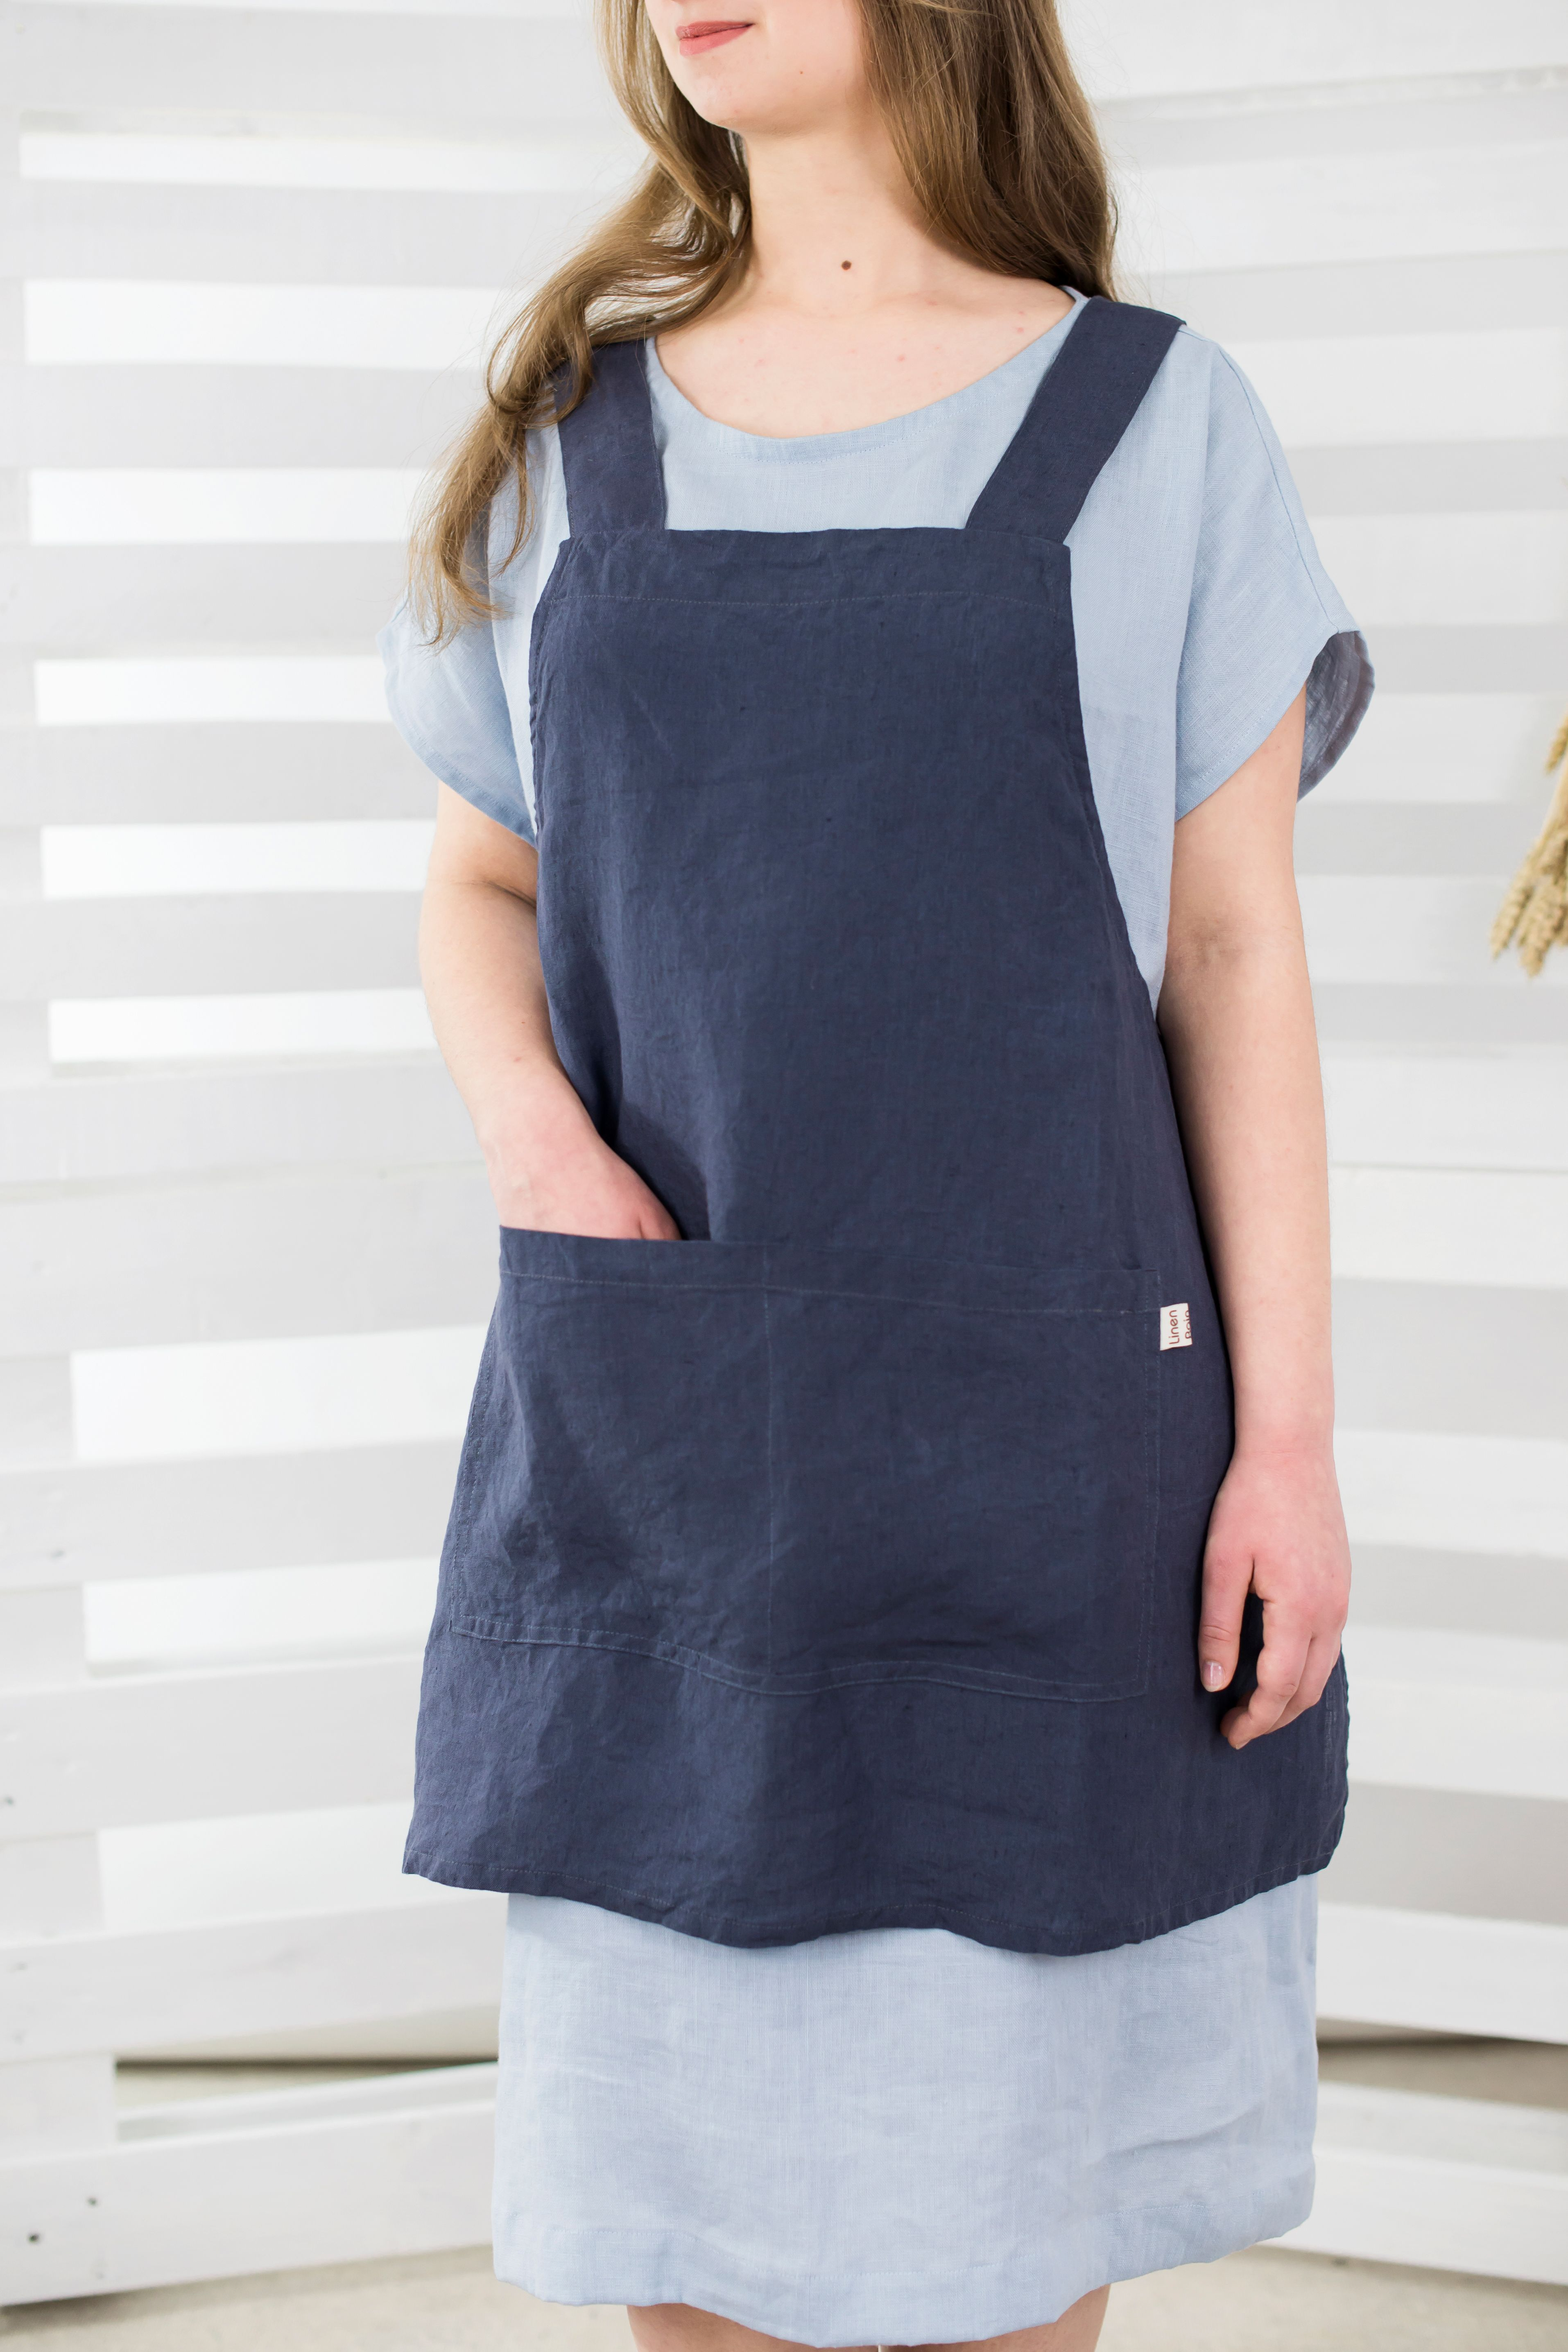 Japanese style apron  Washed linen apron  No ties apron  Craft room apron  Natural linen  Christmas gift  Charcoal grey color